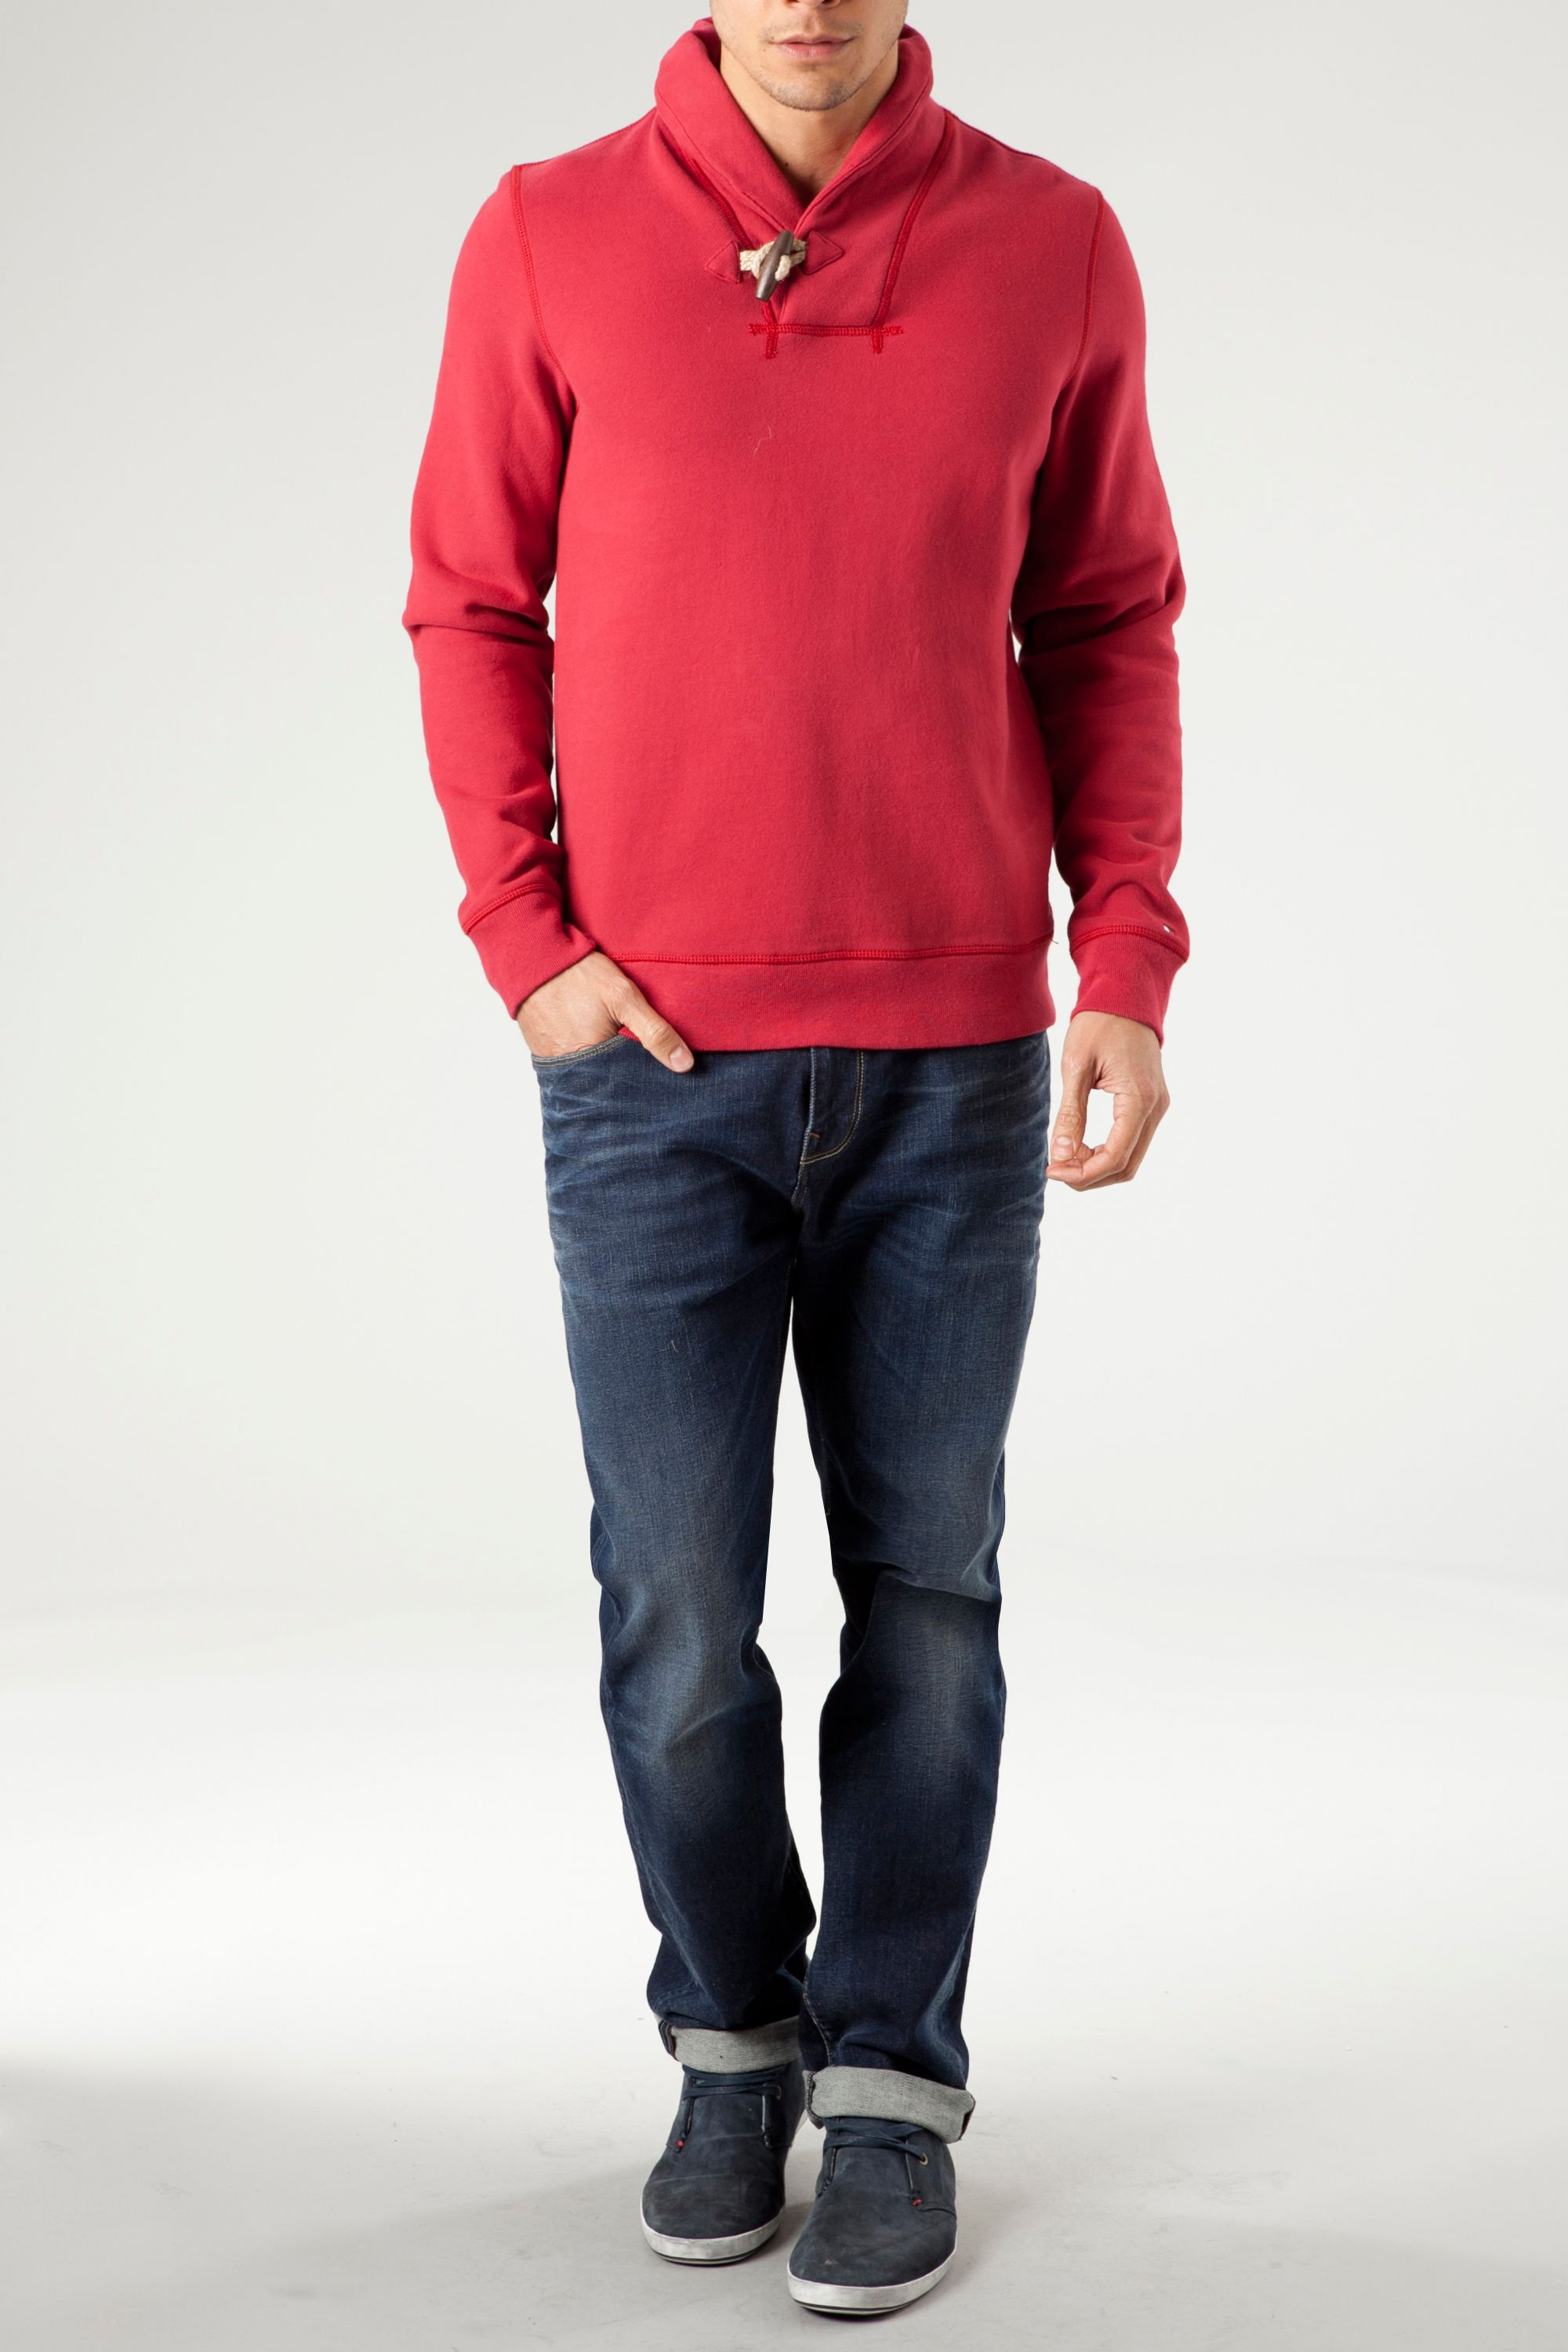 Tom shawl neck sweatshirt